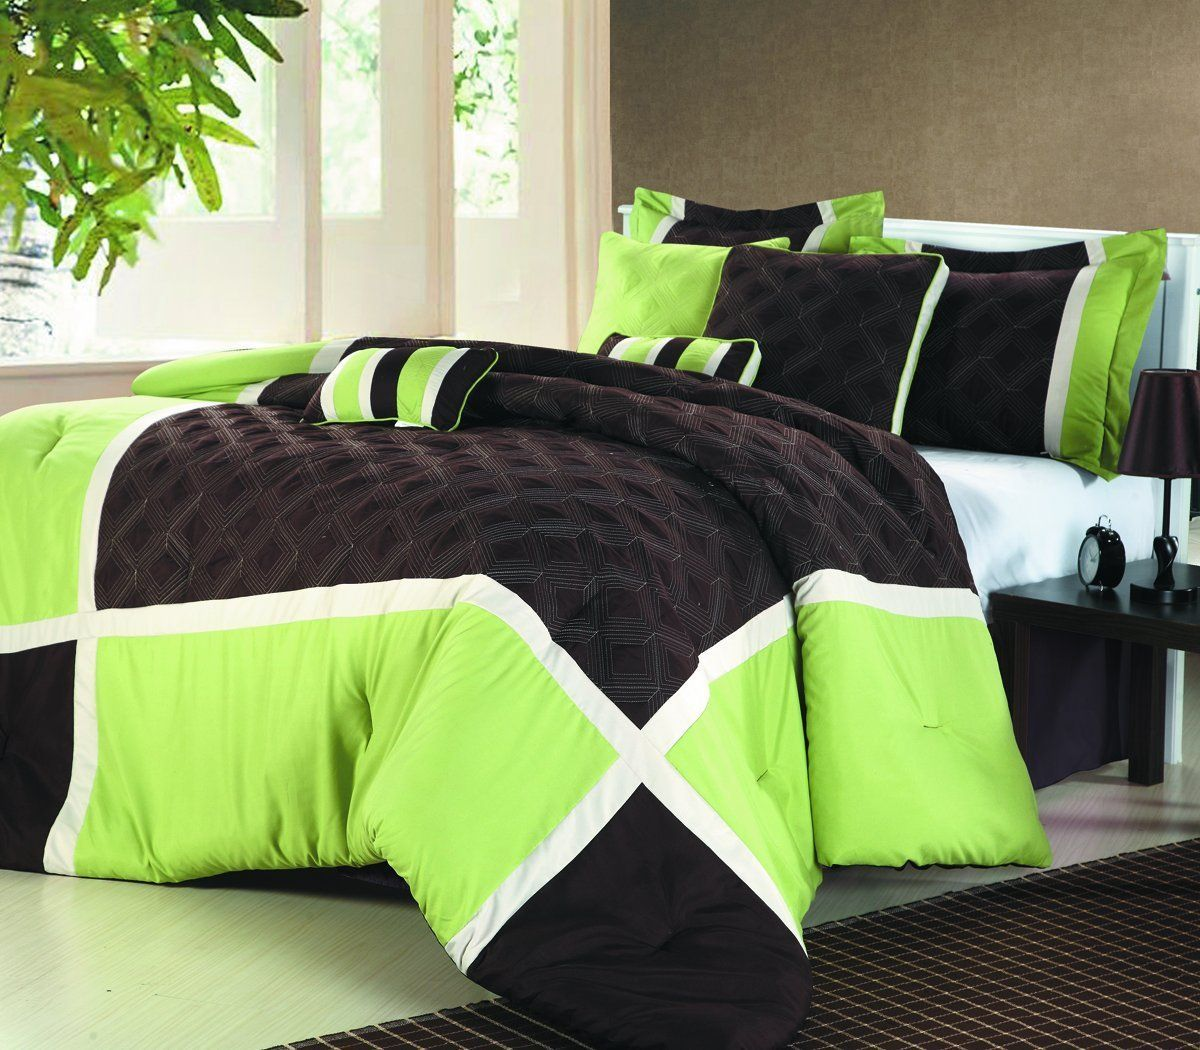 Genial Lime, Green And Black Bedding | Sweetest Slumber